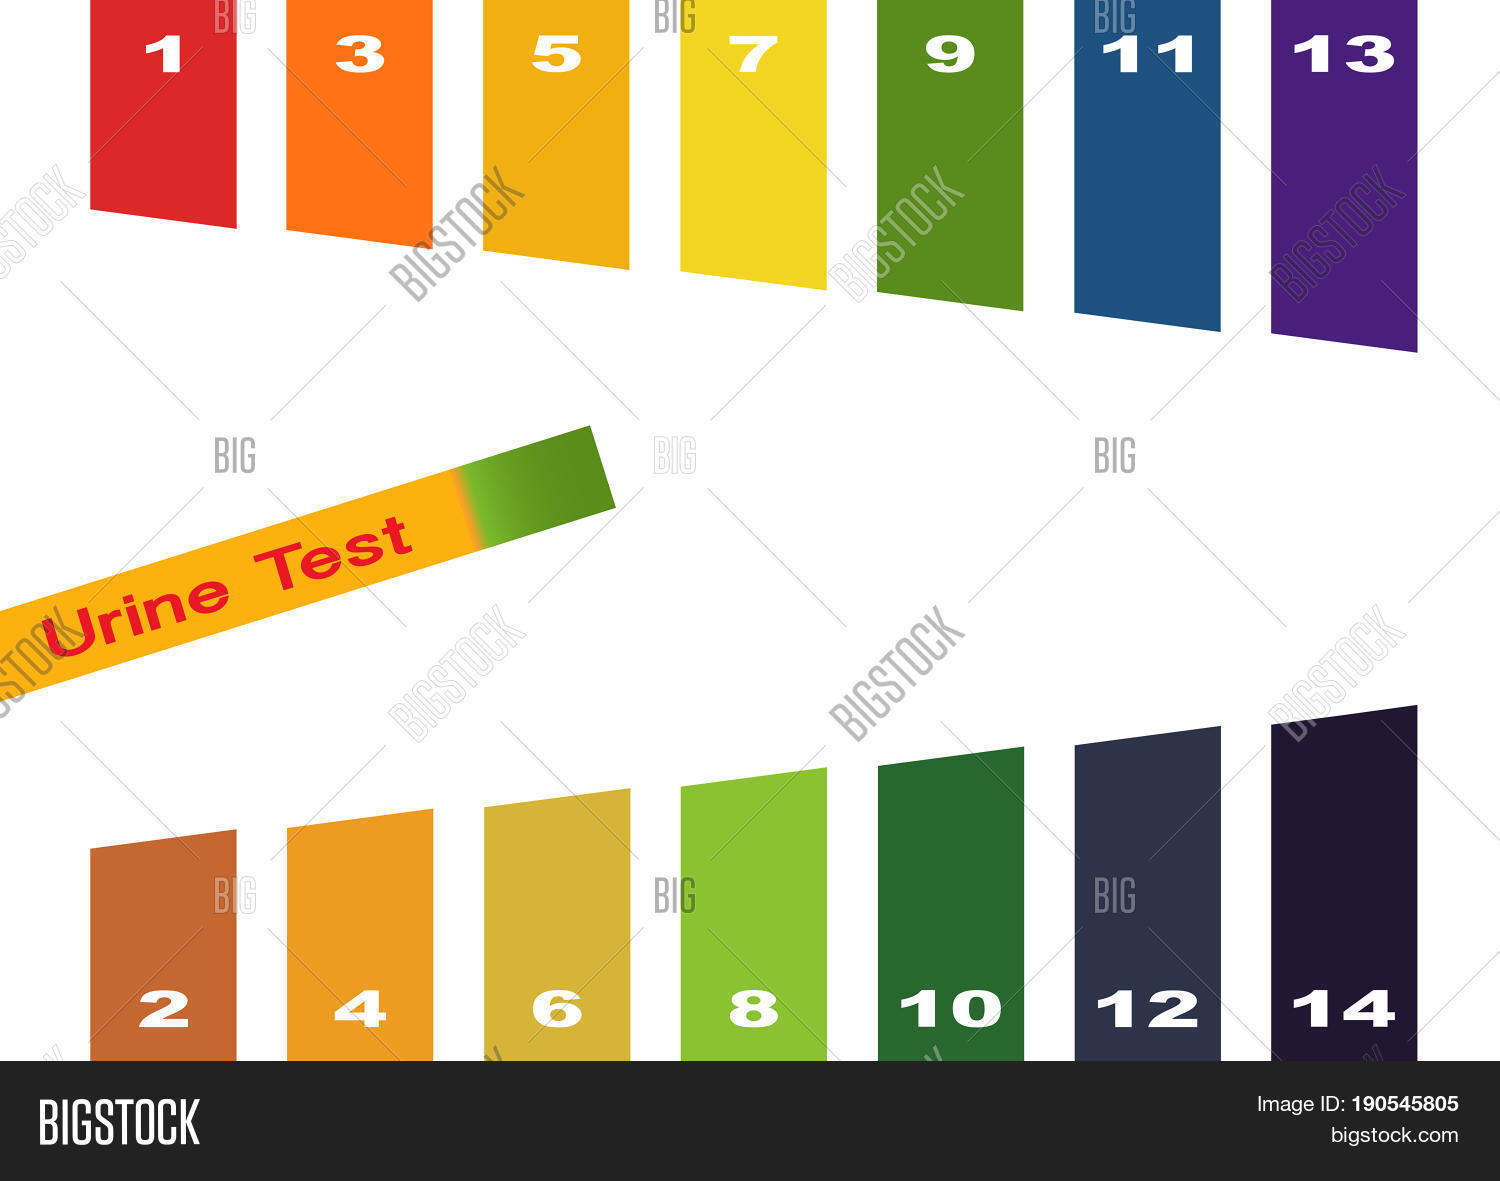 Urine test hand holding test vector photo bigstock hand holding test tube with ph indicator comparing color to scale and litmus nvjuhfo Images